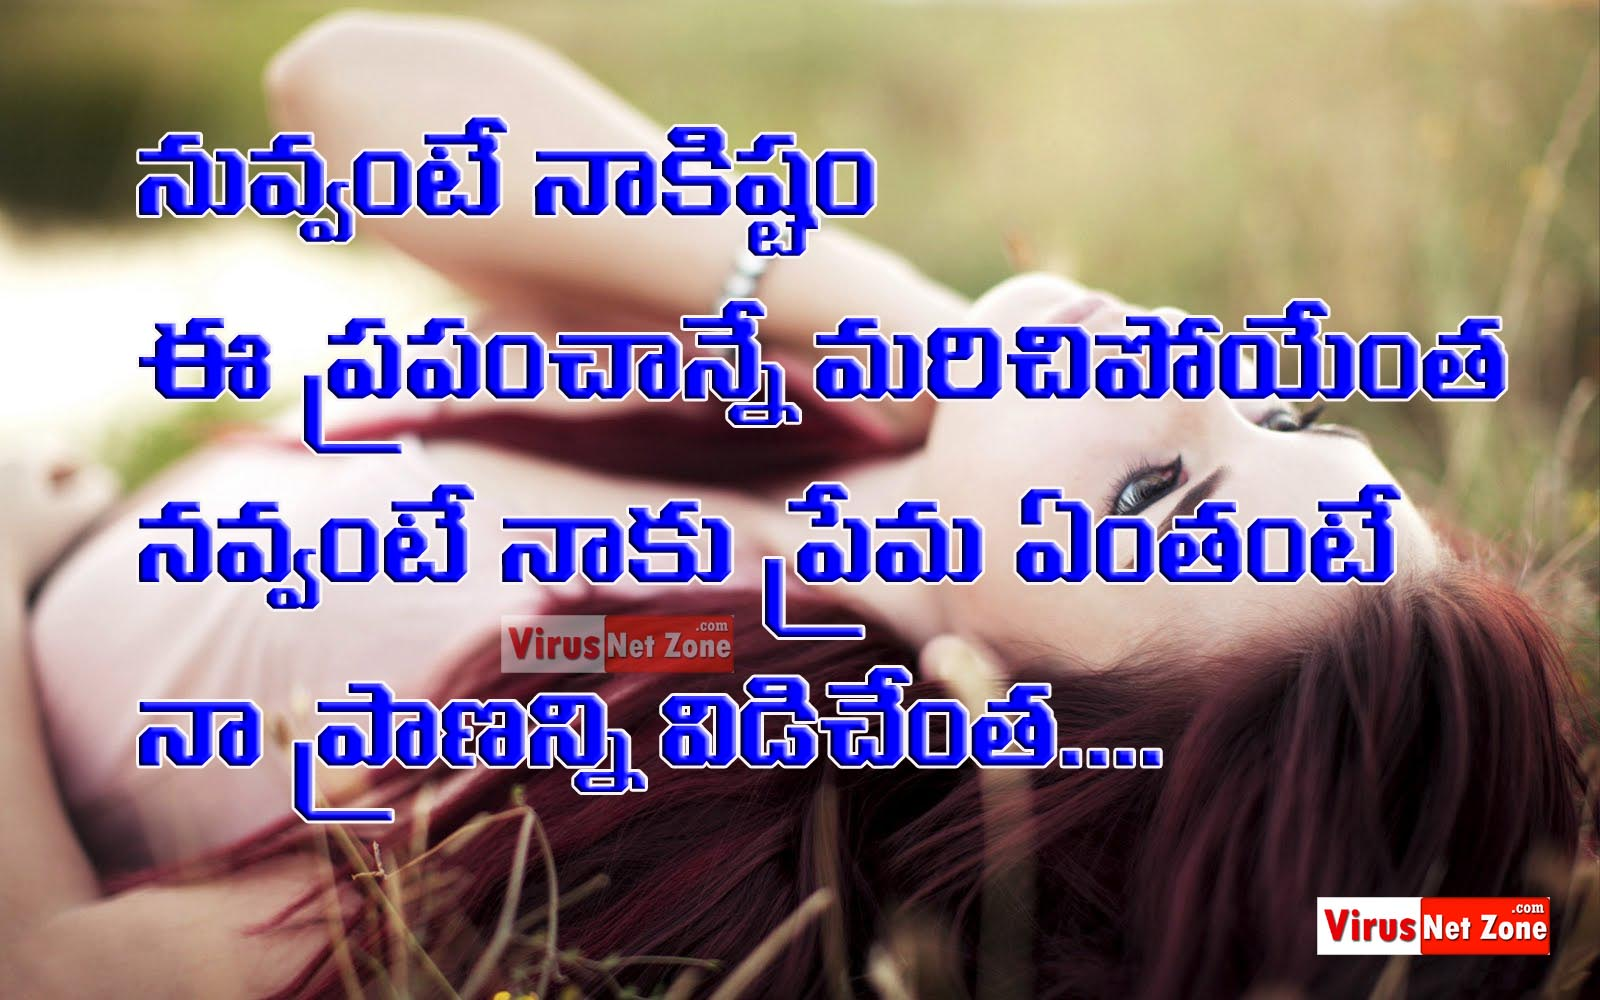 Telugu Love Quotes Adorable Real Heart Touching Love Quotes Images In Telugu  Virus Net Zone